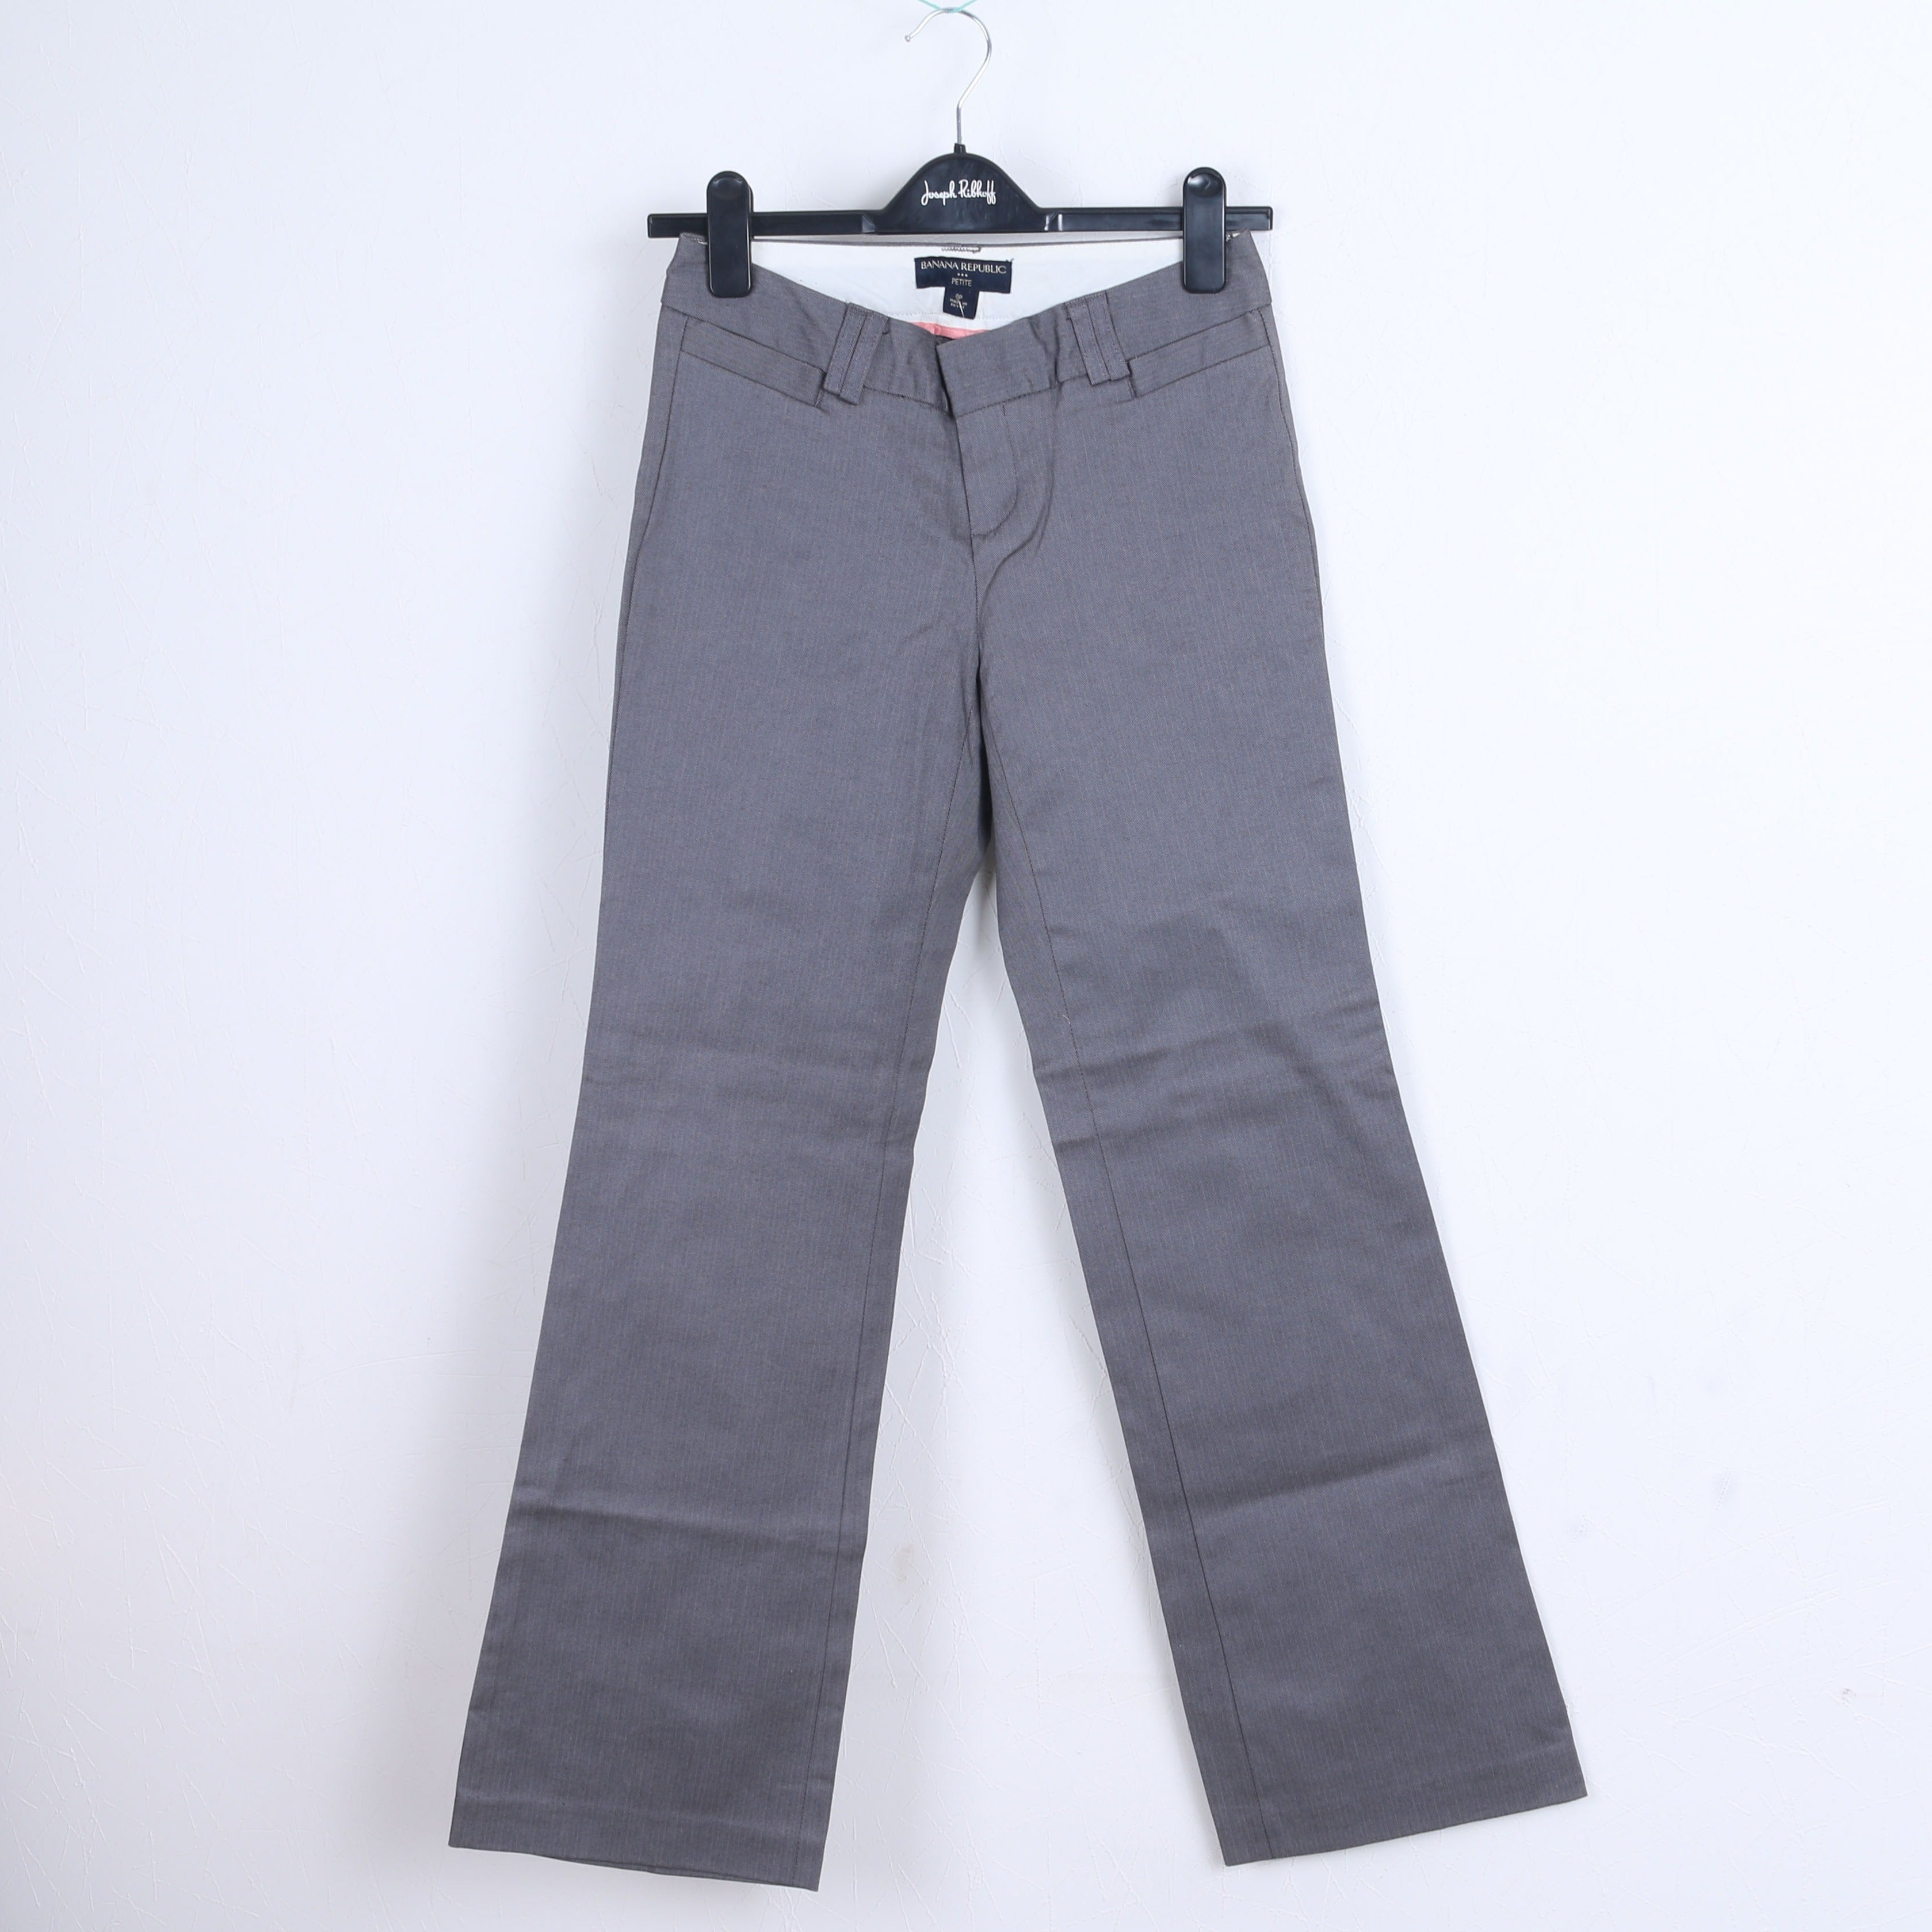 PANTALON DE VESTIR BANANA REPUBLIC